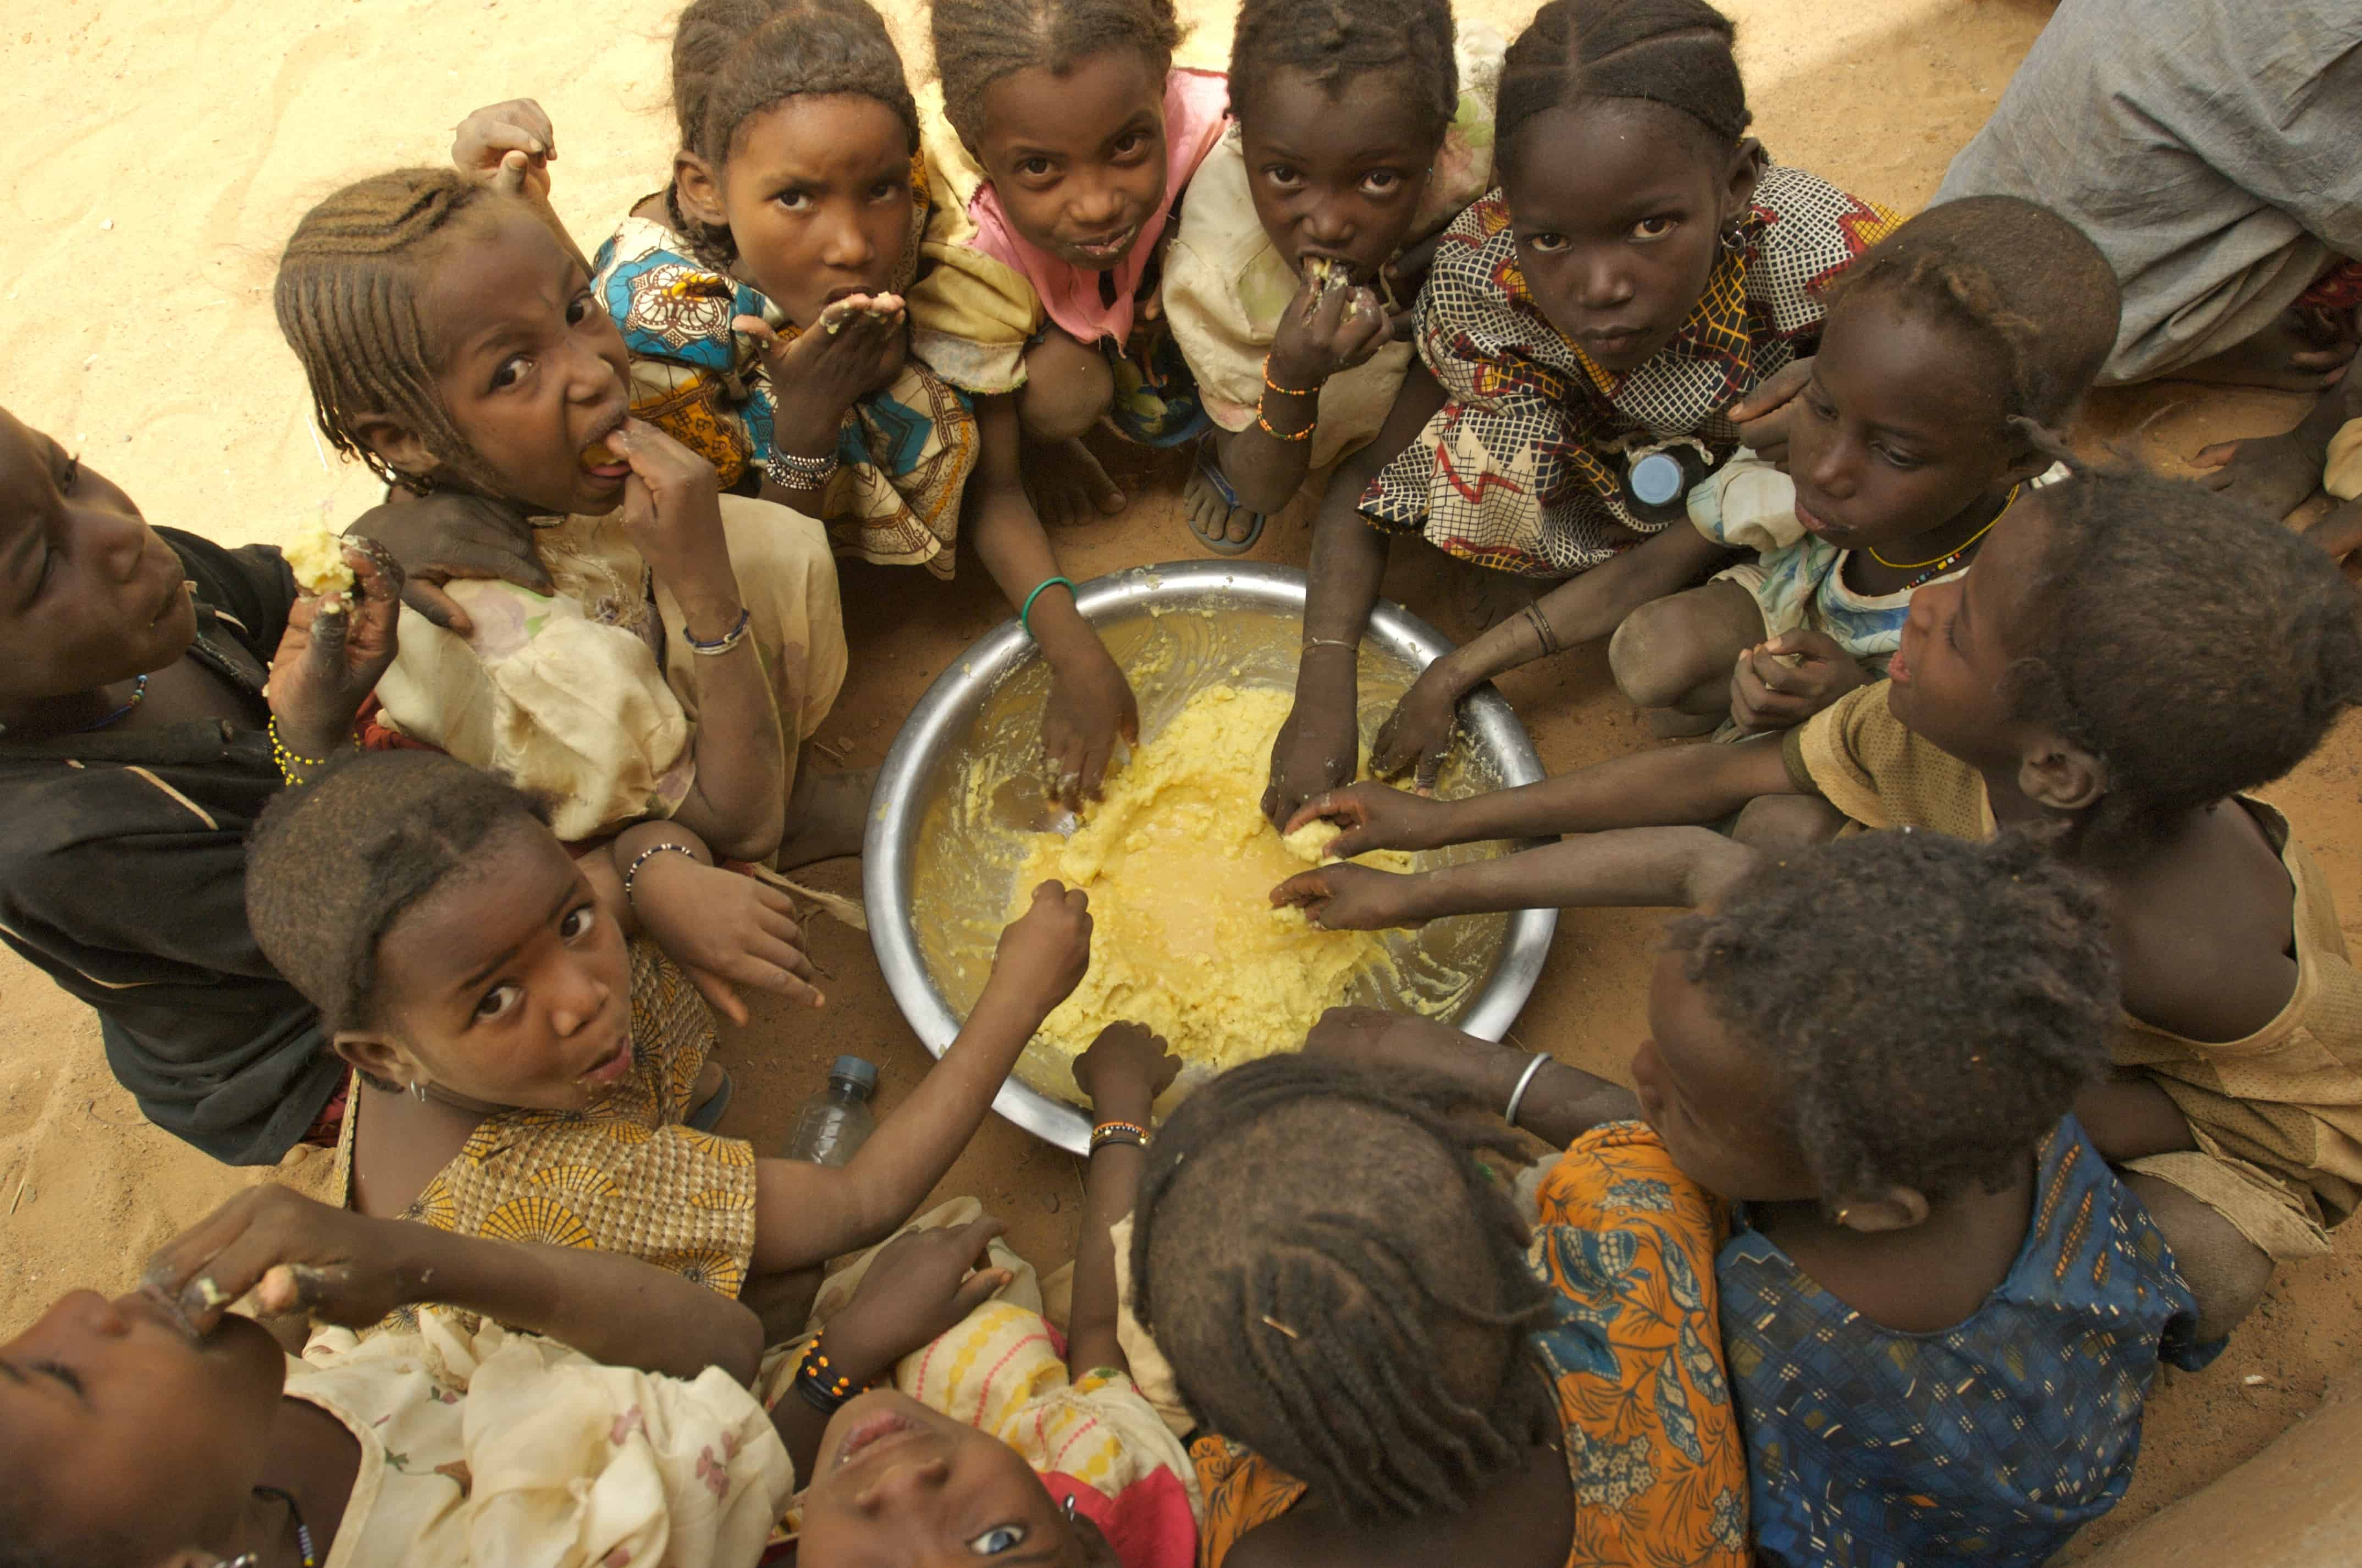 http://venturesafrica.com/world-food-day-2015-africas-journey-to-hunger-eradication/